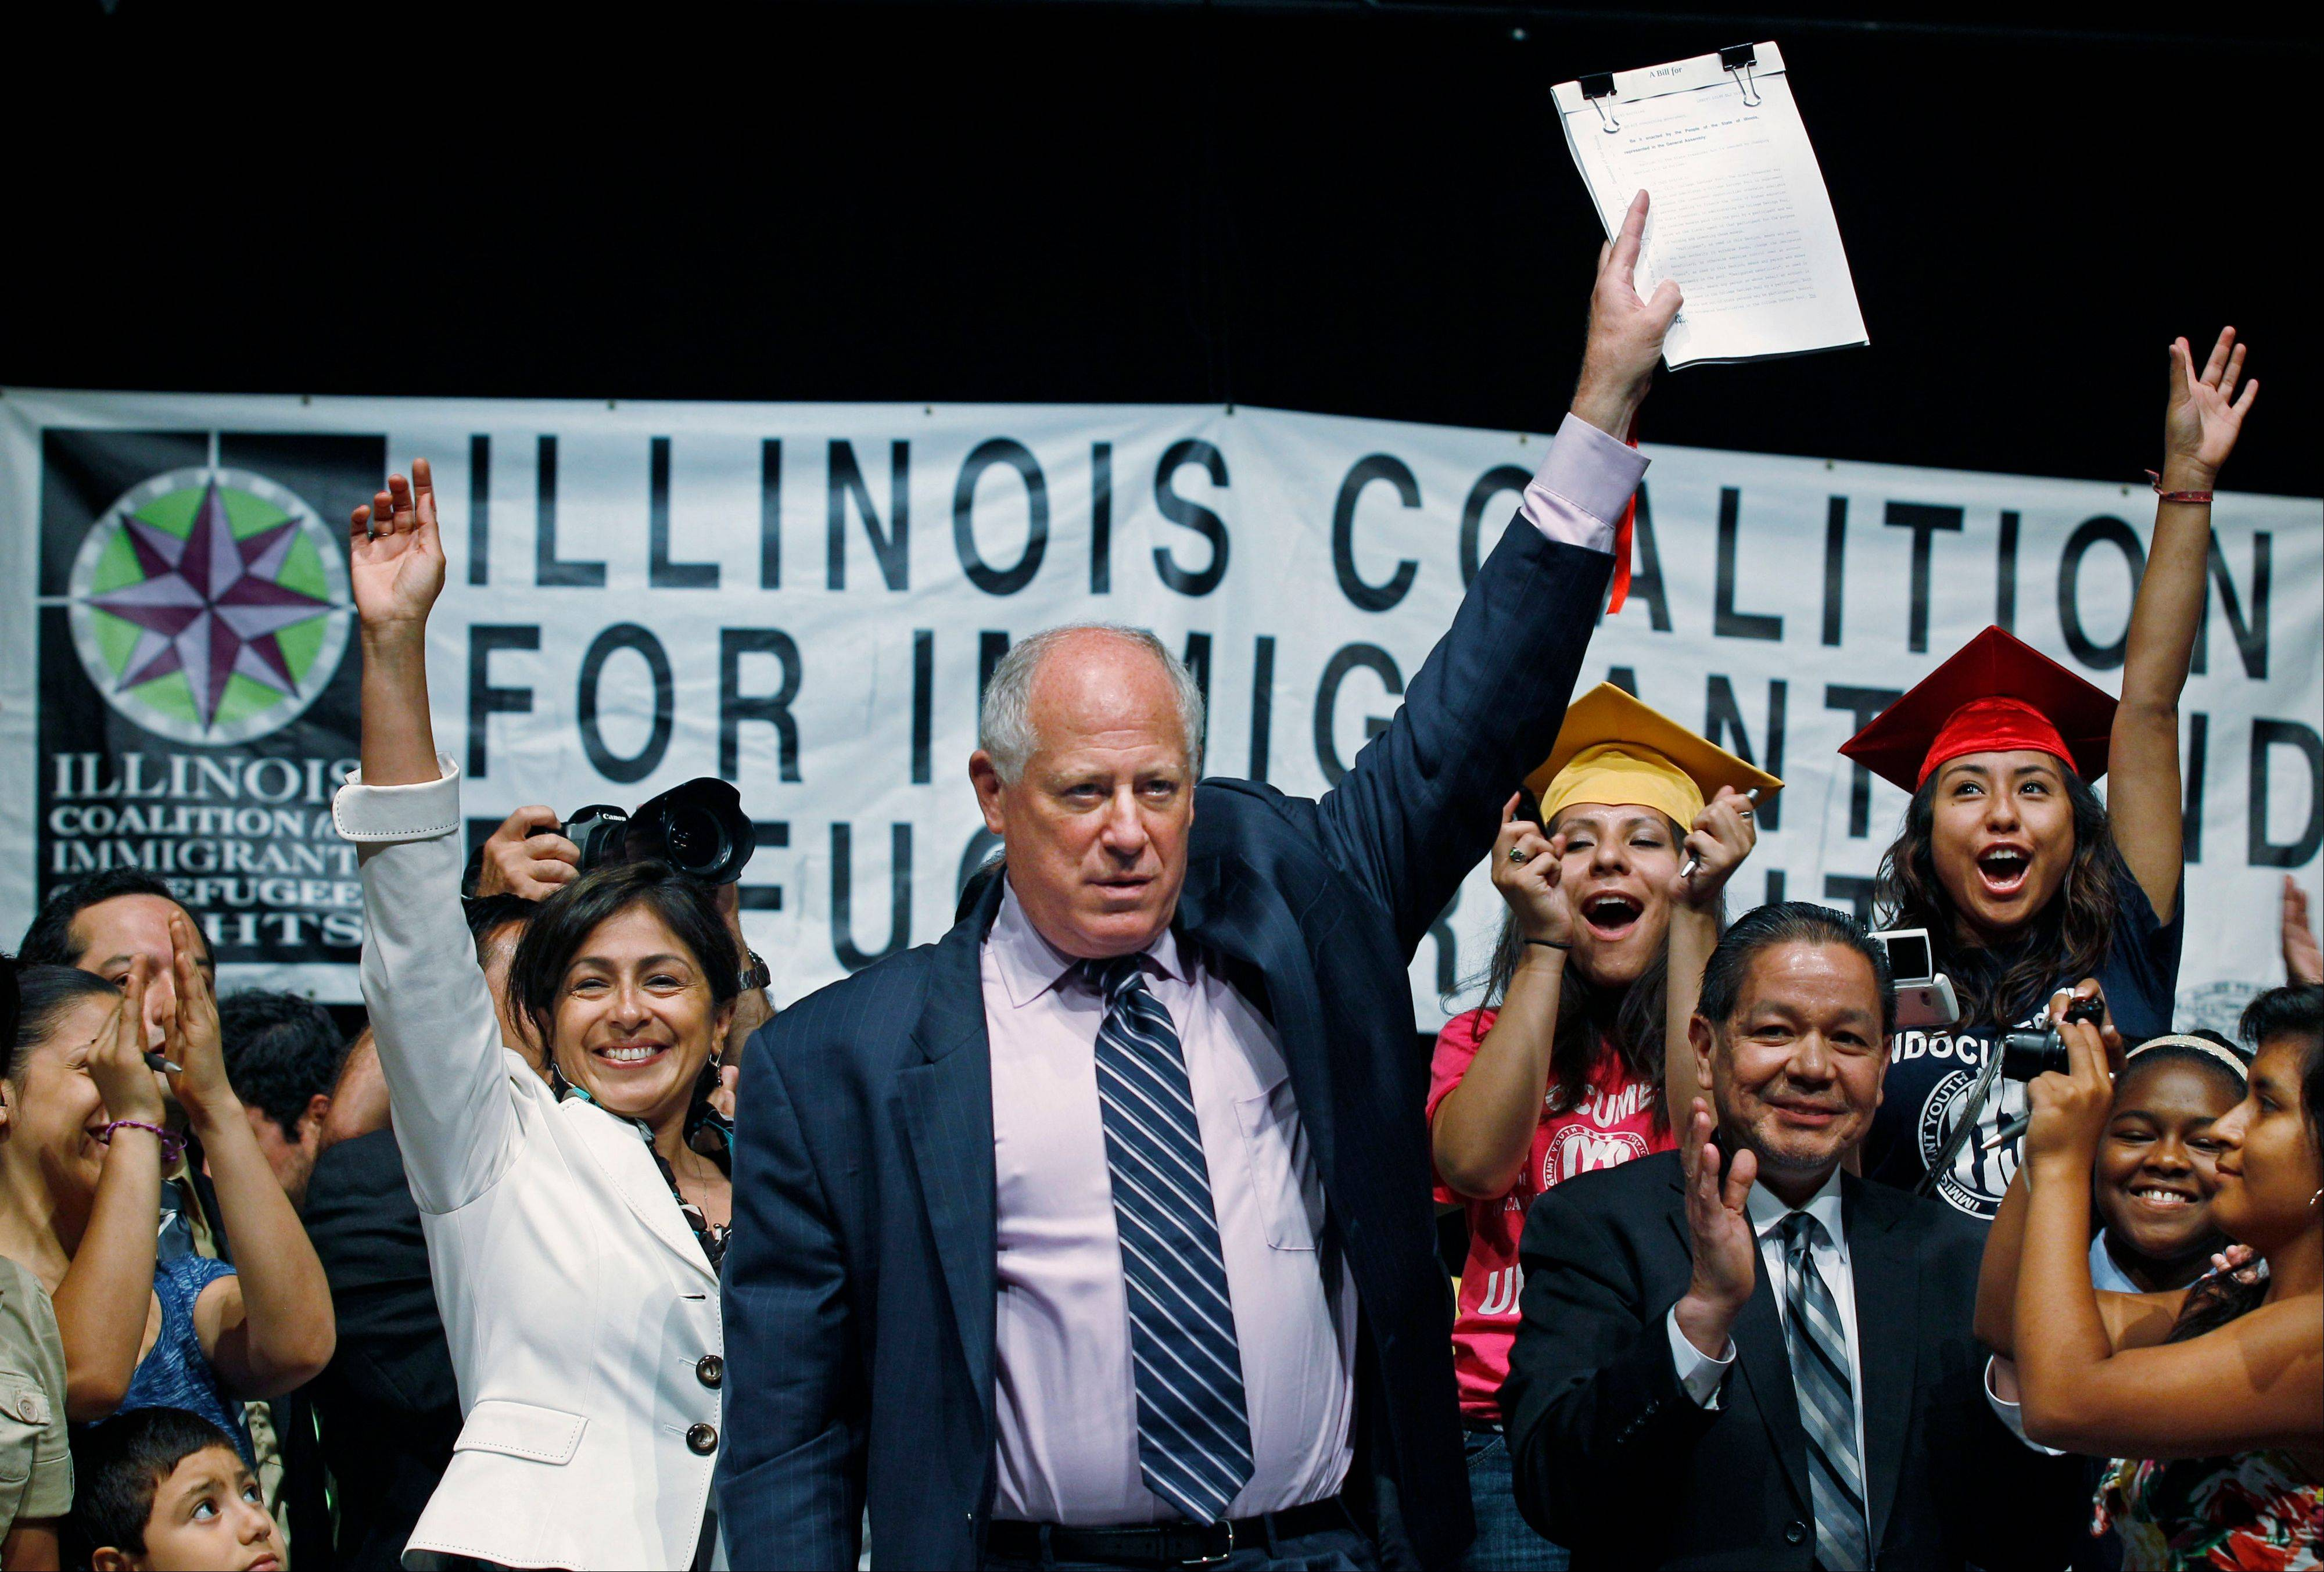 Gov. Pat Quinn celebrates with students and supporters after signing the Illinois Dream Act into law Monday at a Latino neighborhood high school in Chicago. The new law gives illegal immigrants access to private scholarships for college.